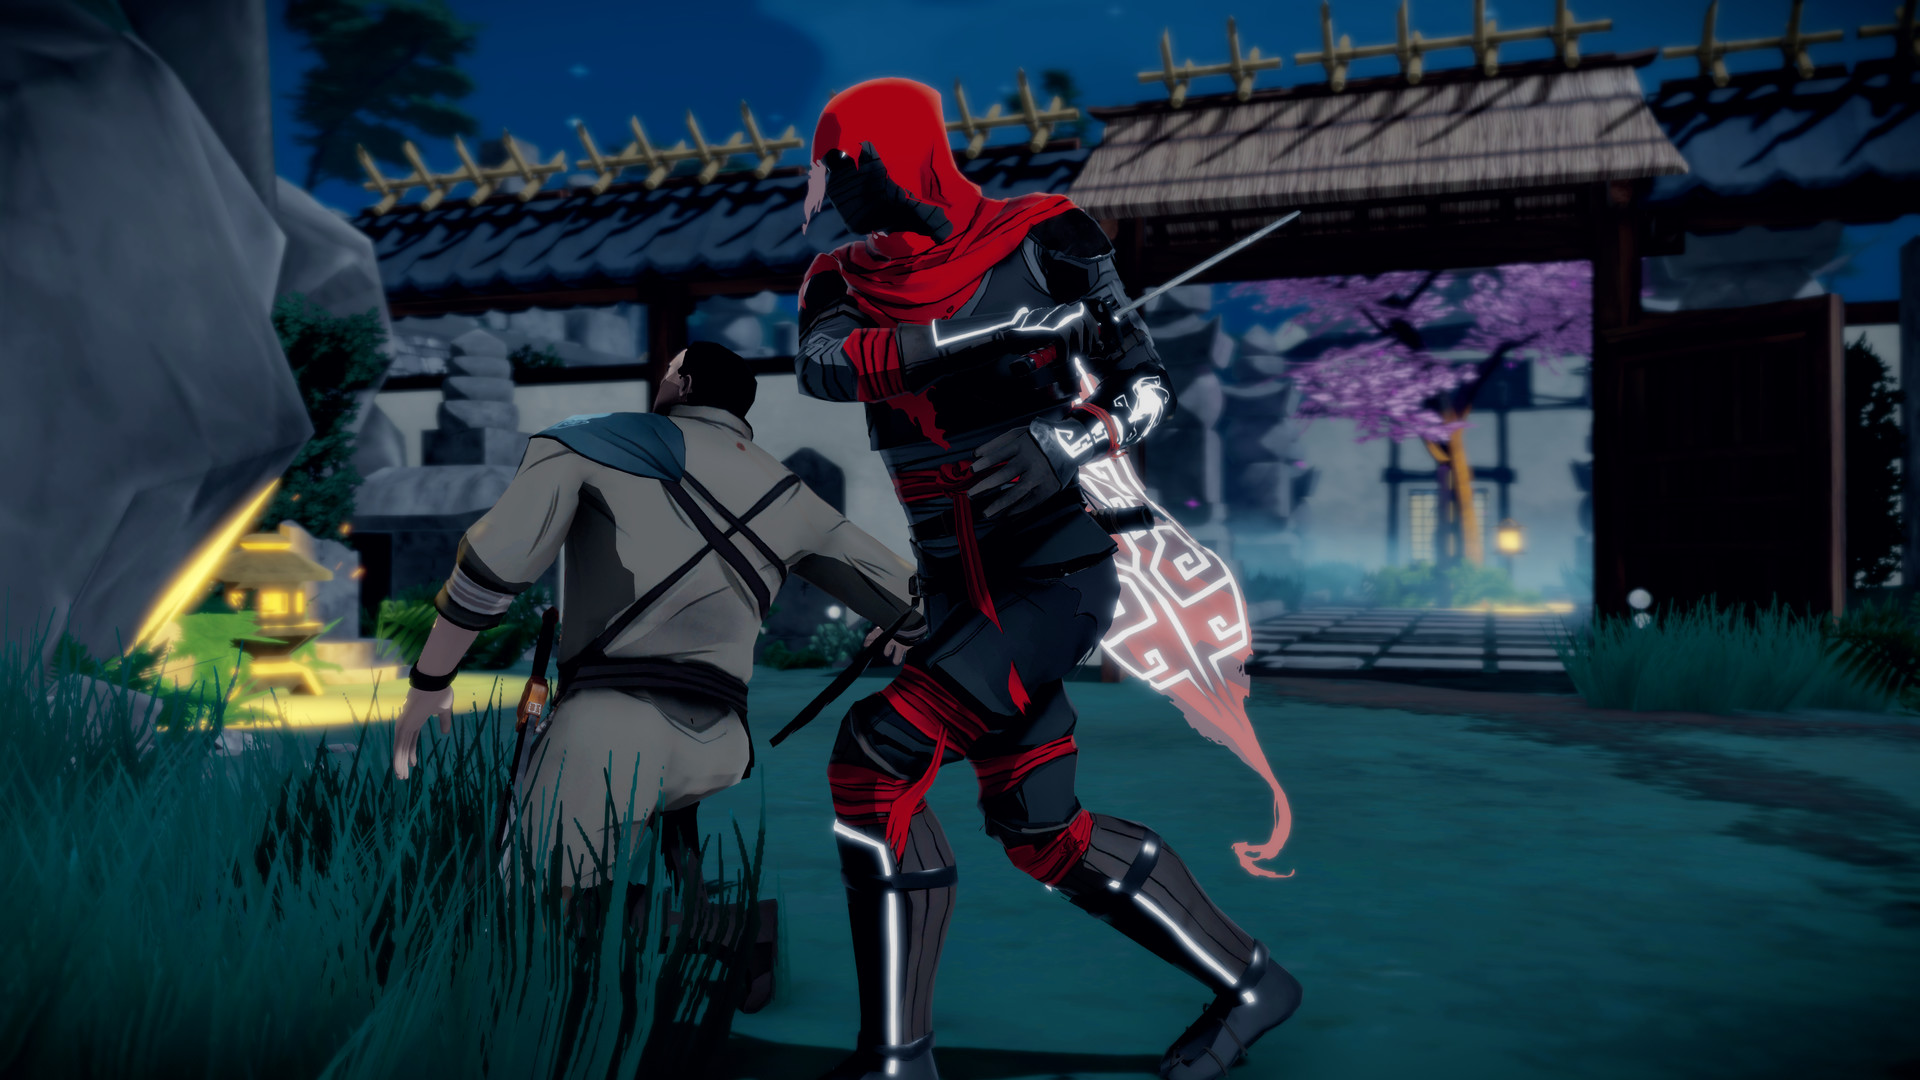 Find the best laptop for Aragami